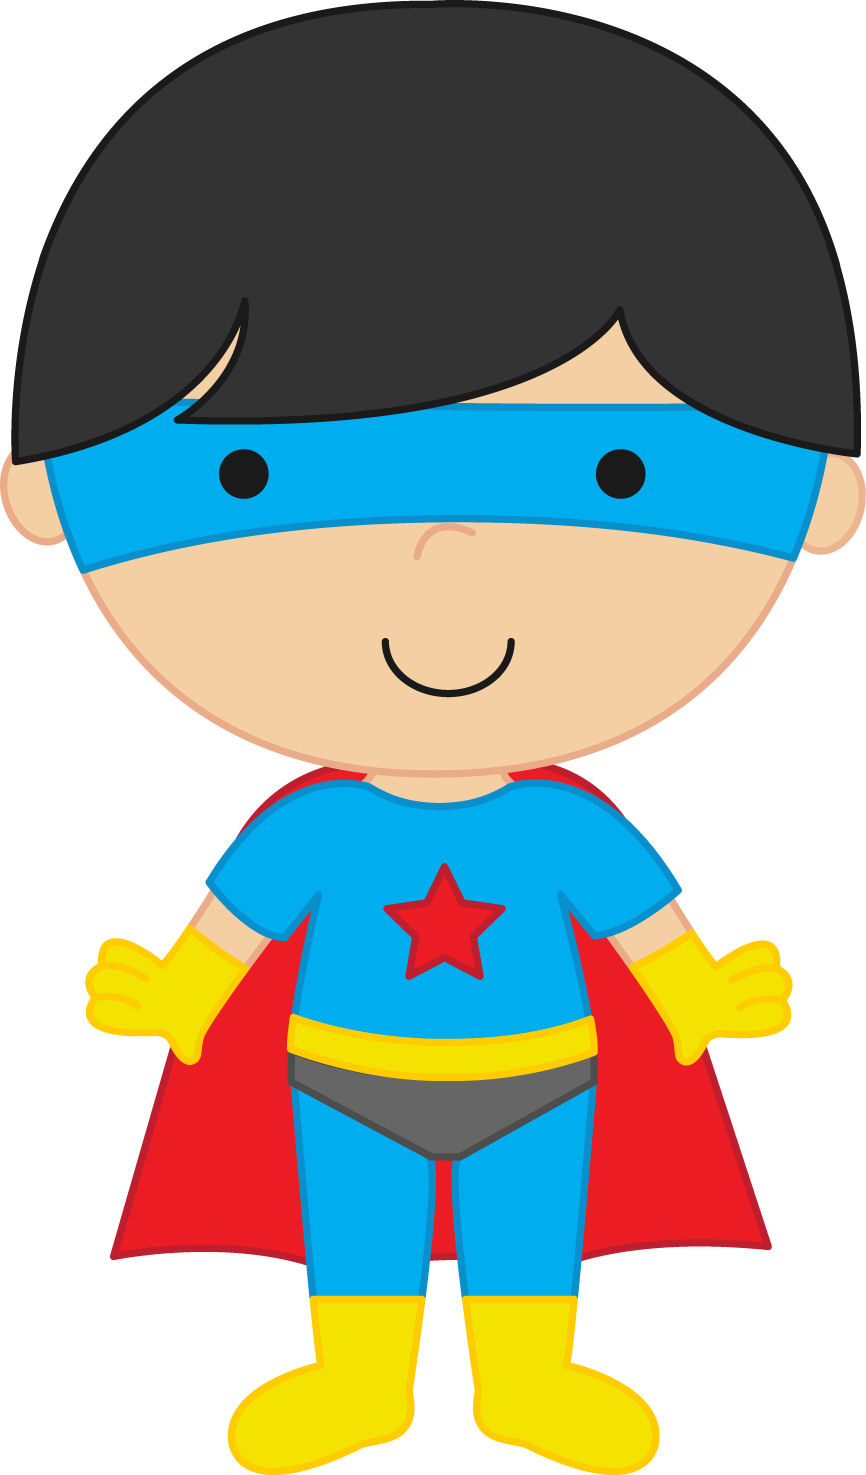 Clipart super image library download Super Hero Clipart & Super Hero Clip Art Images - ClipartALL.com image library download